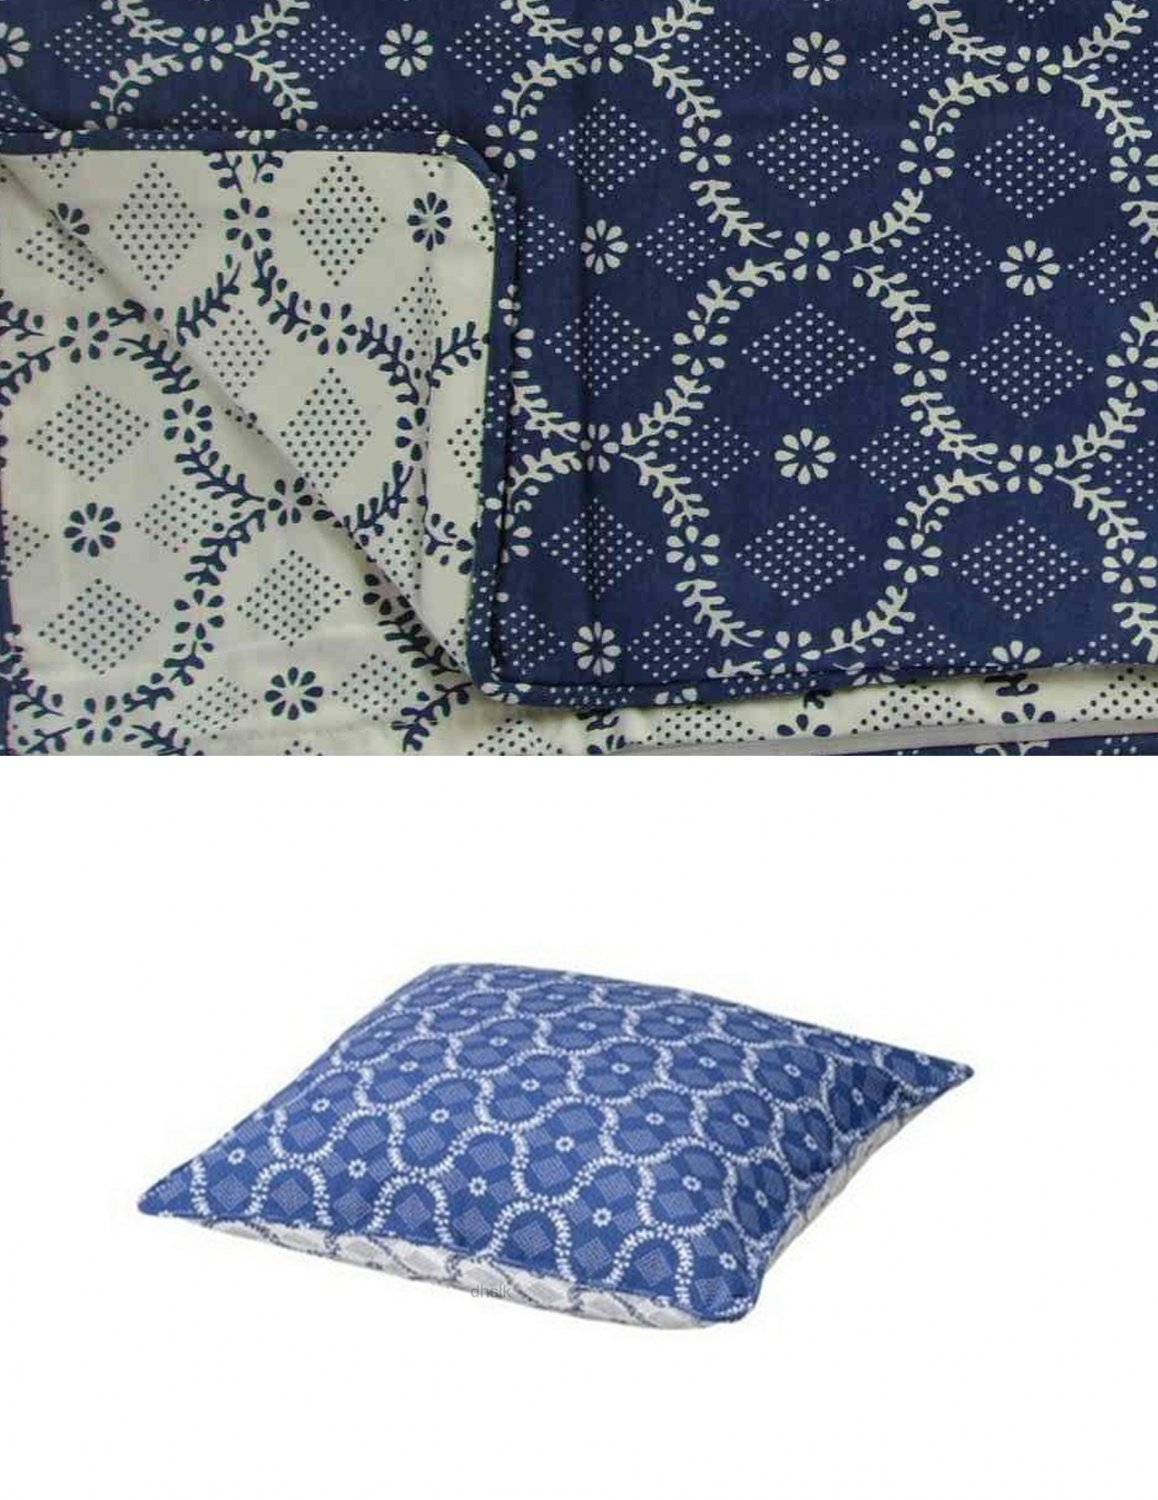 Ikea ALVINE FIGUR PILLOW SHAM Cushion Cover BLUE White ROMANTIC Country